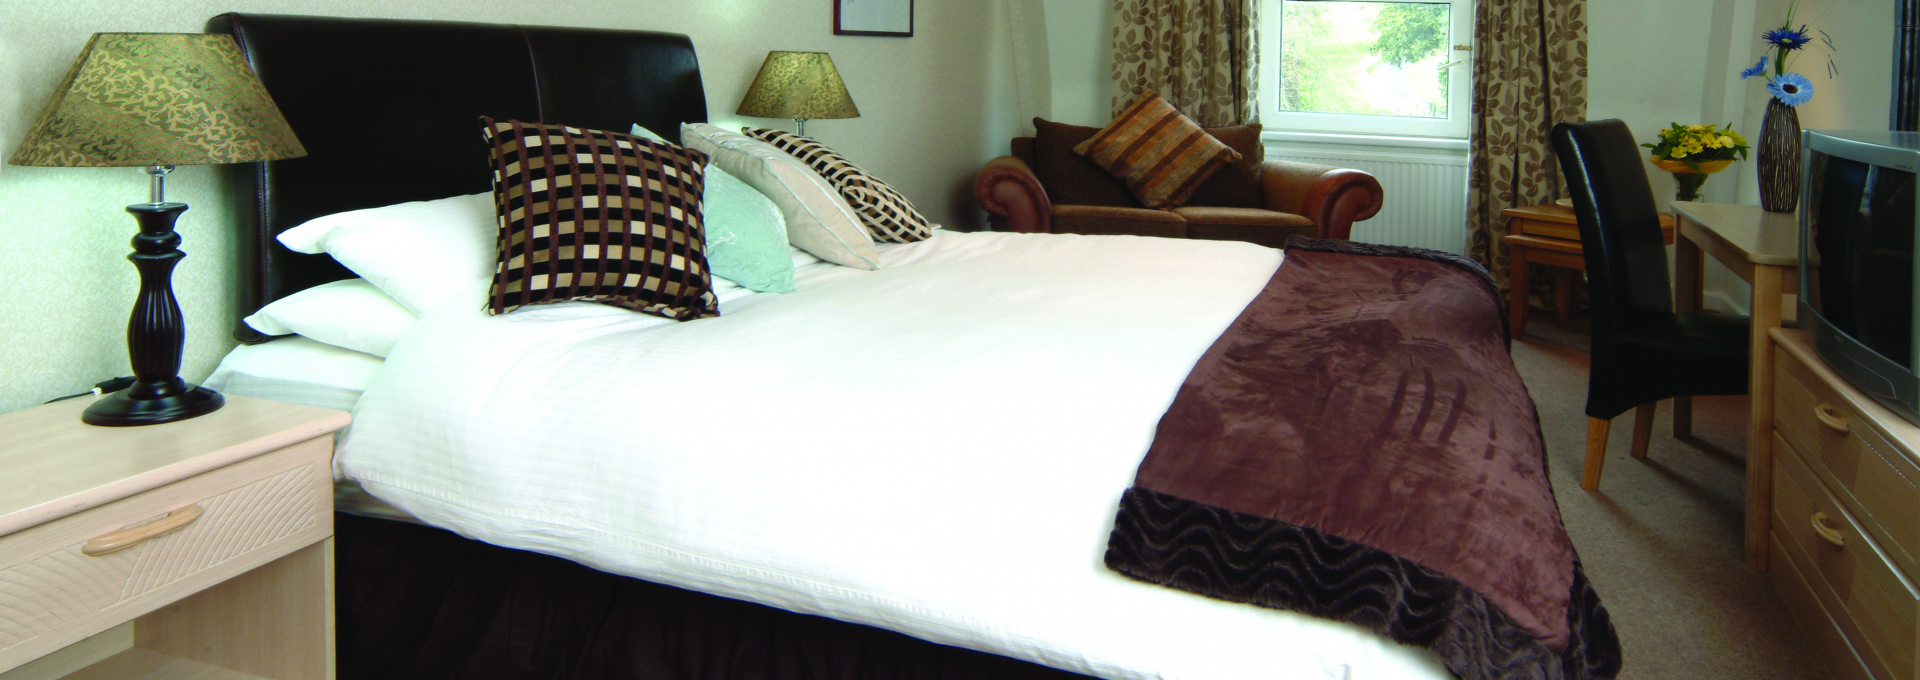 Standard Bed at the Durrant House Hotel, North Devon